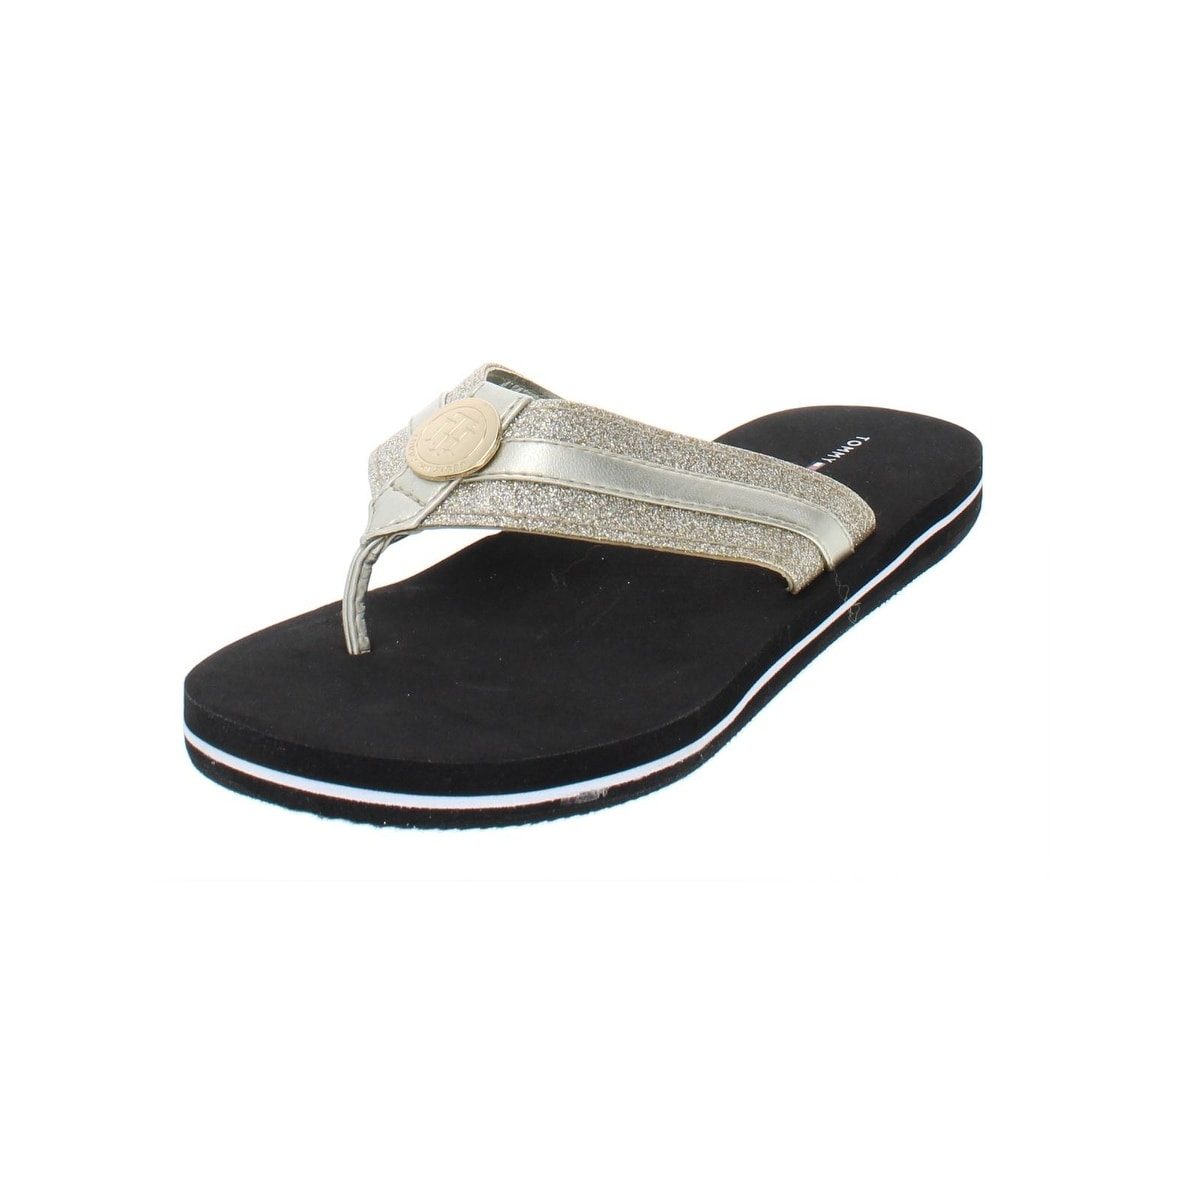 7b8c1837 Shop Tommy Hilfiger Womens Capes Flip-Flops Glitter Thong - Free Shipping  On Orders Over $45 - Overstock - 27584934 - Gold Multi Texture - 6 Medium  (B,M)